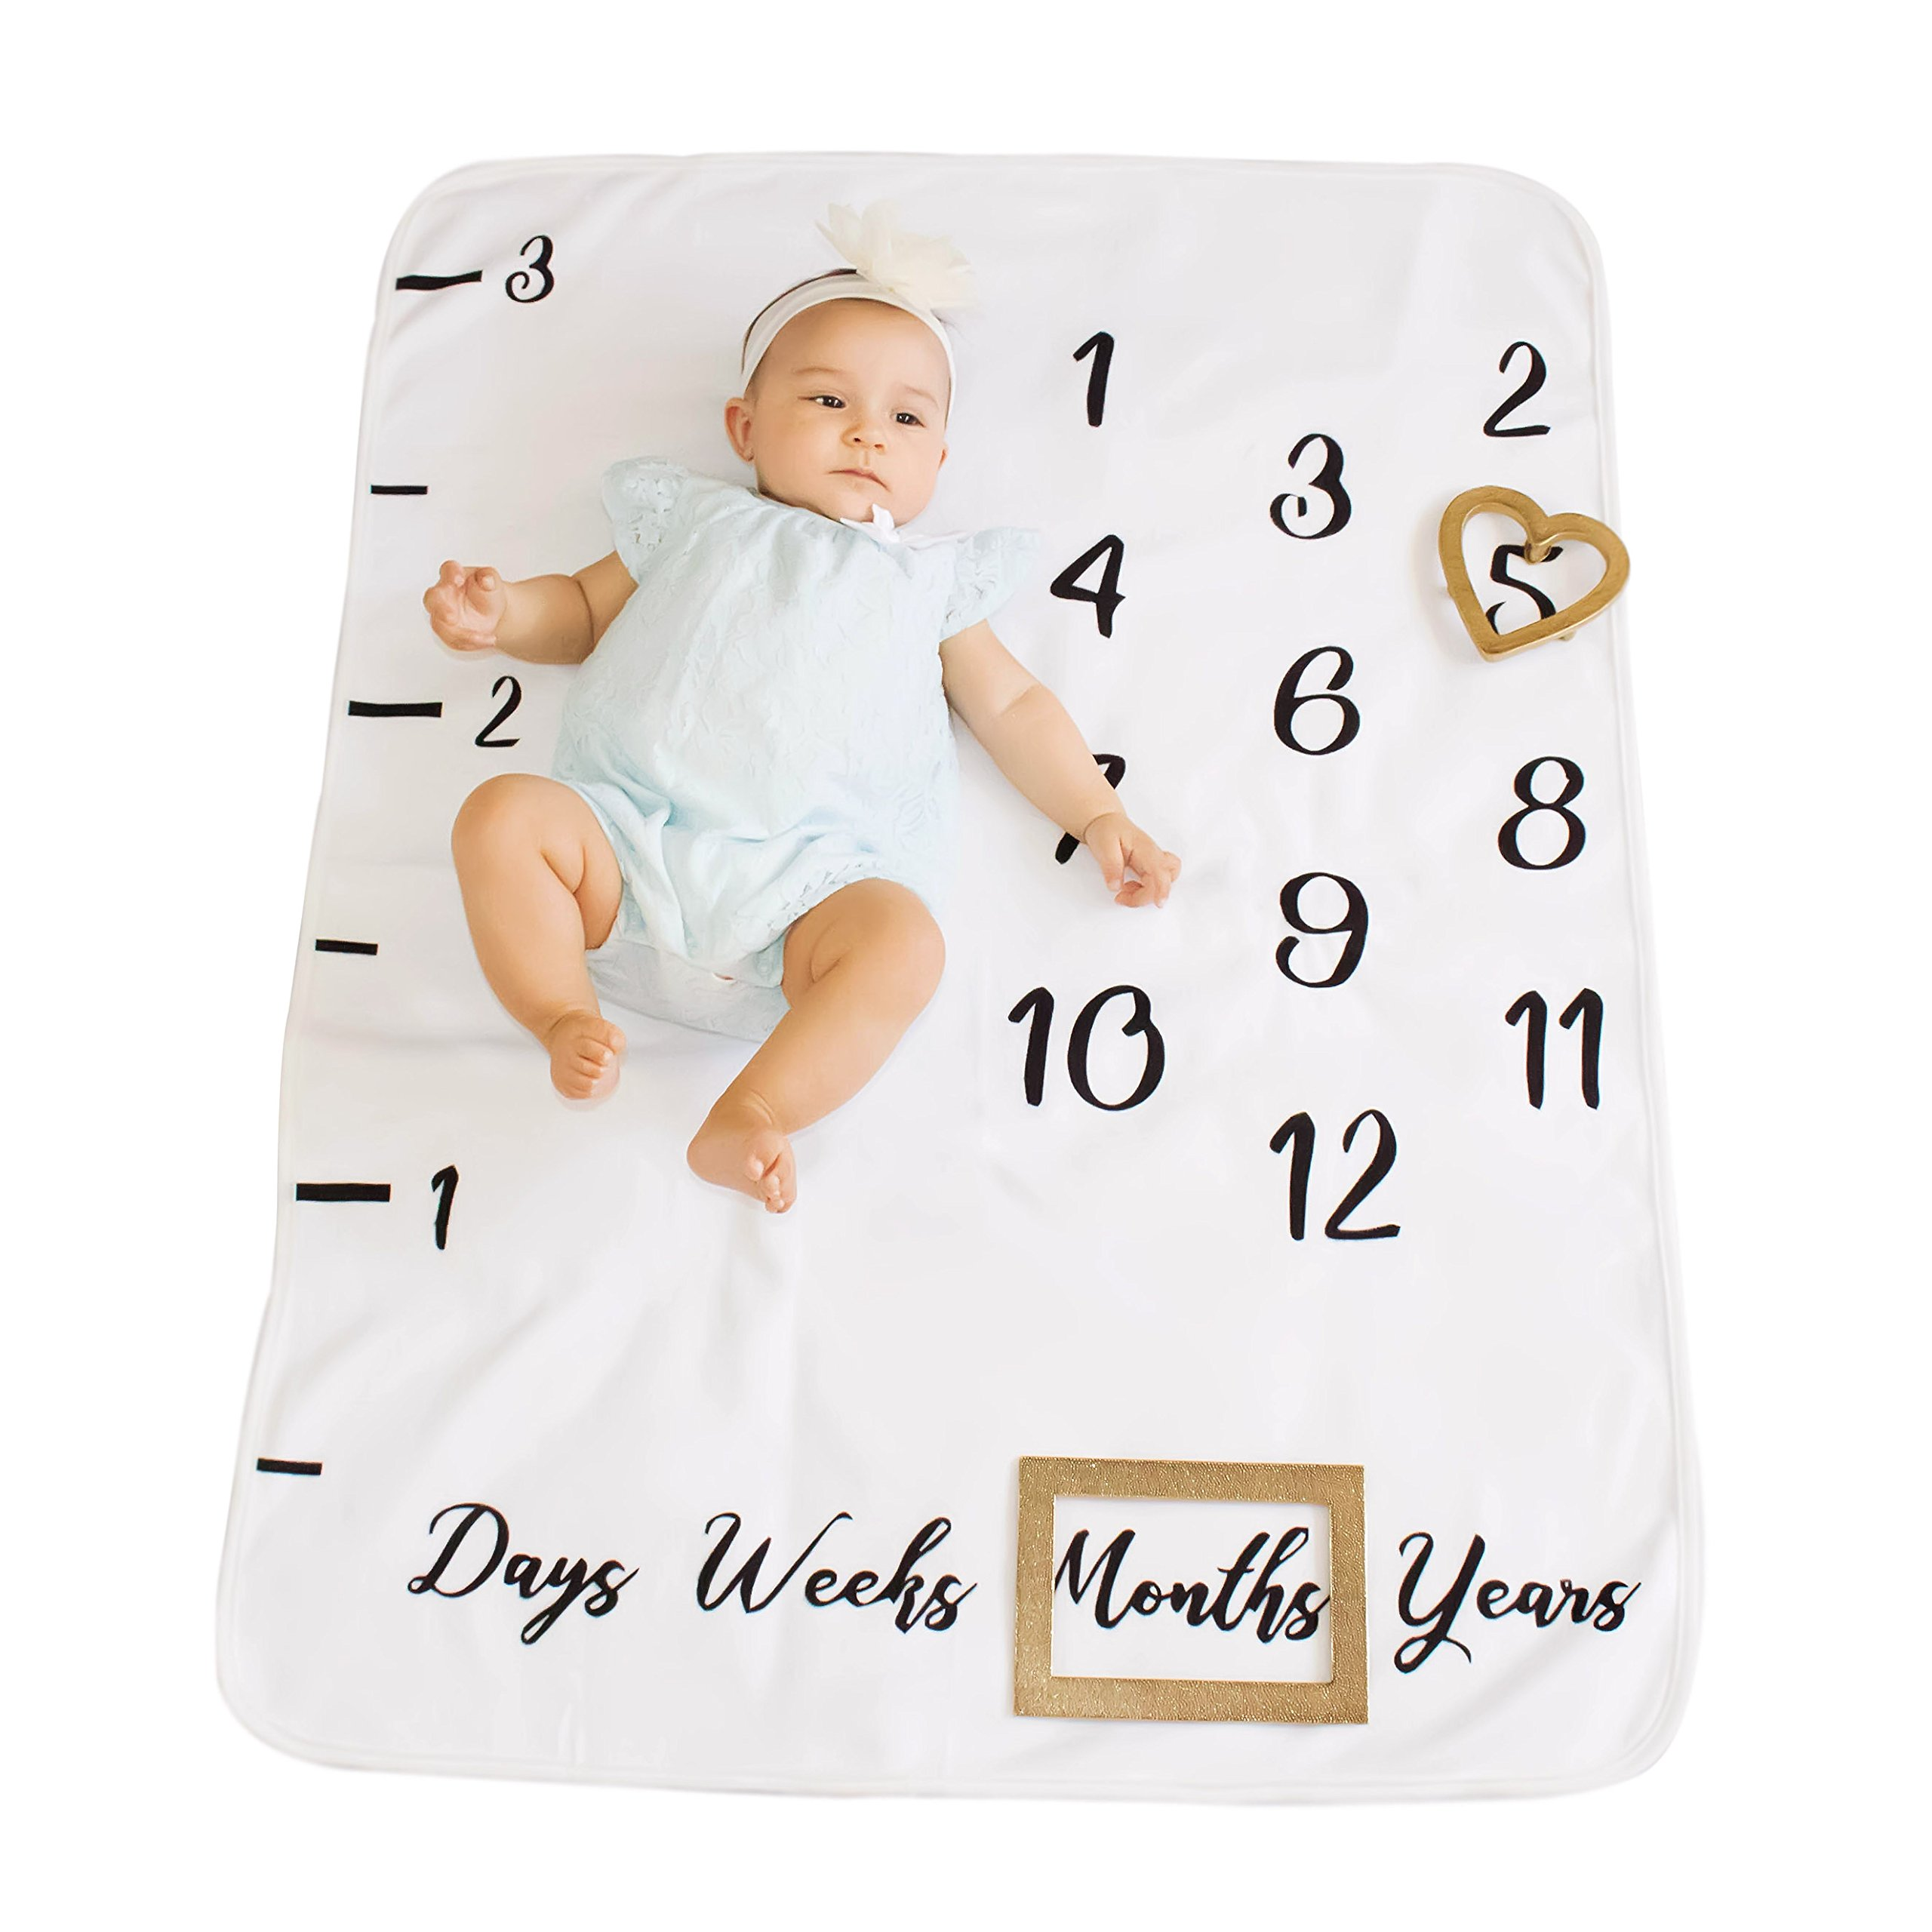 Baby Milestone Monthly Blanket | Premium Thick Fleece for Newborn, Toddler, Girl or Boy | Photography Backdrop for Pictures | Free Photography eBook | Baby Shower Gift Backdrop for Moms.